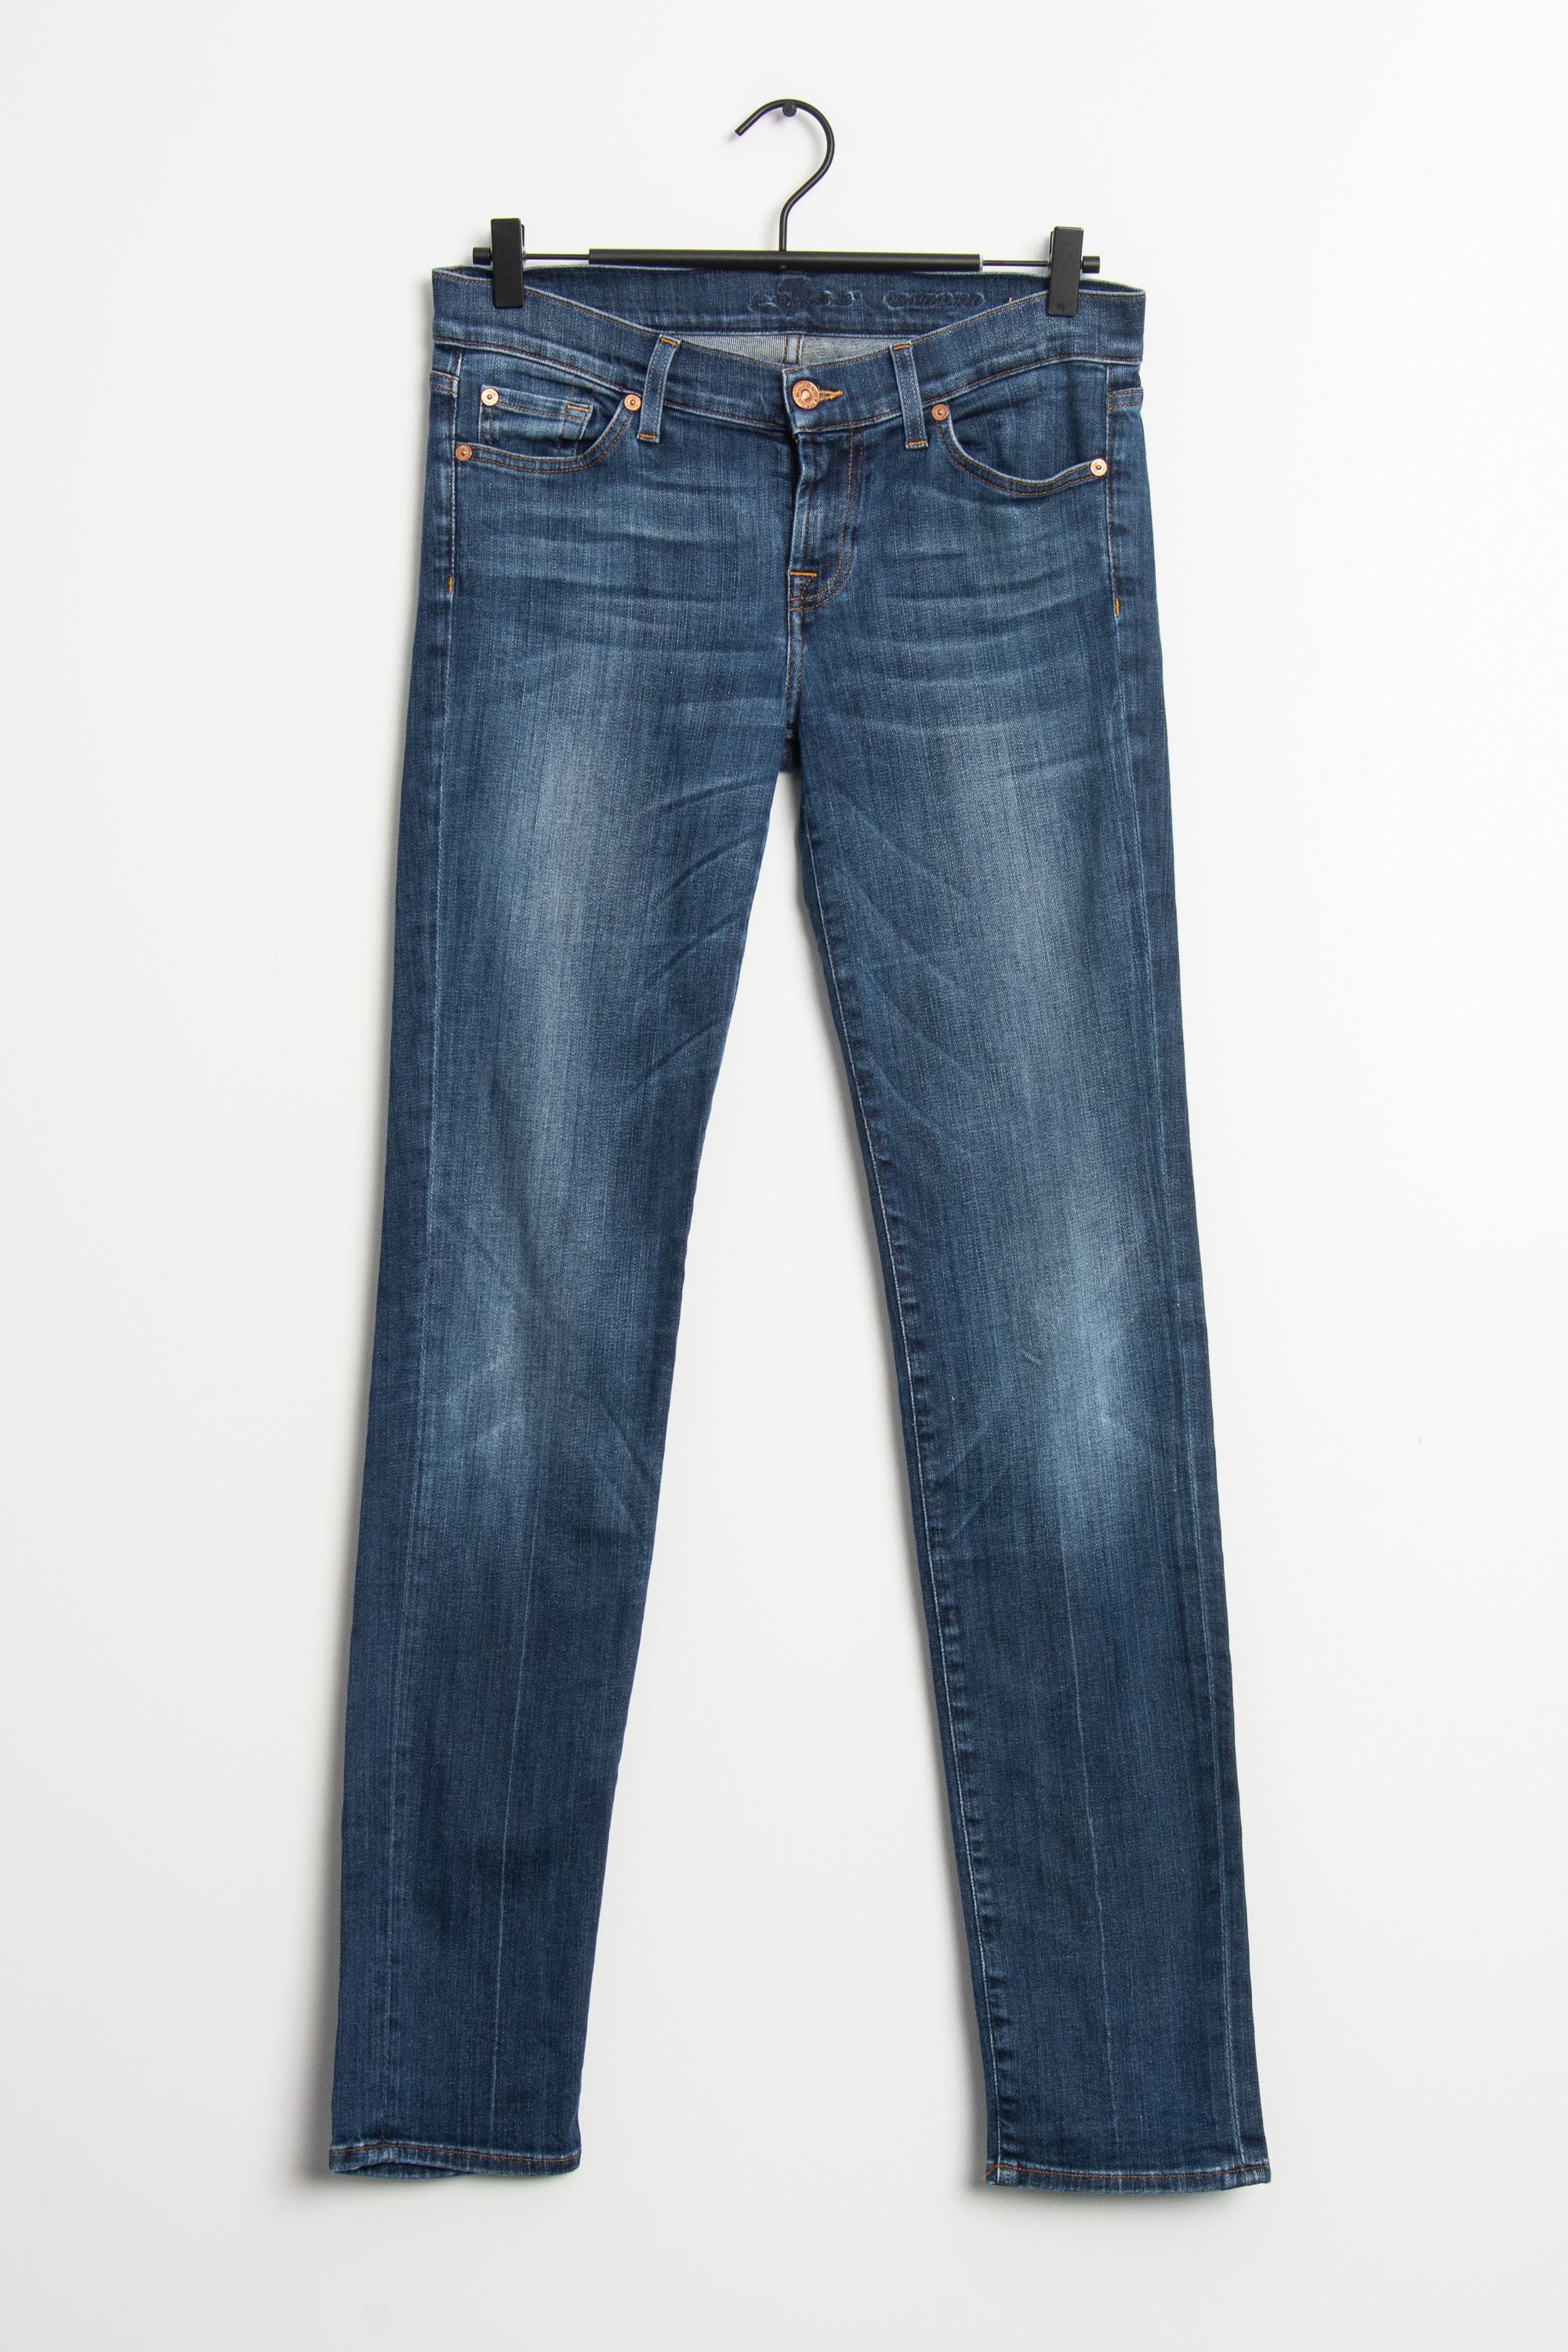 7 for all mankind Jeans Blau Gr.40